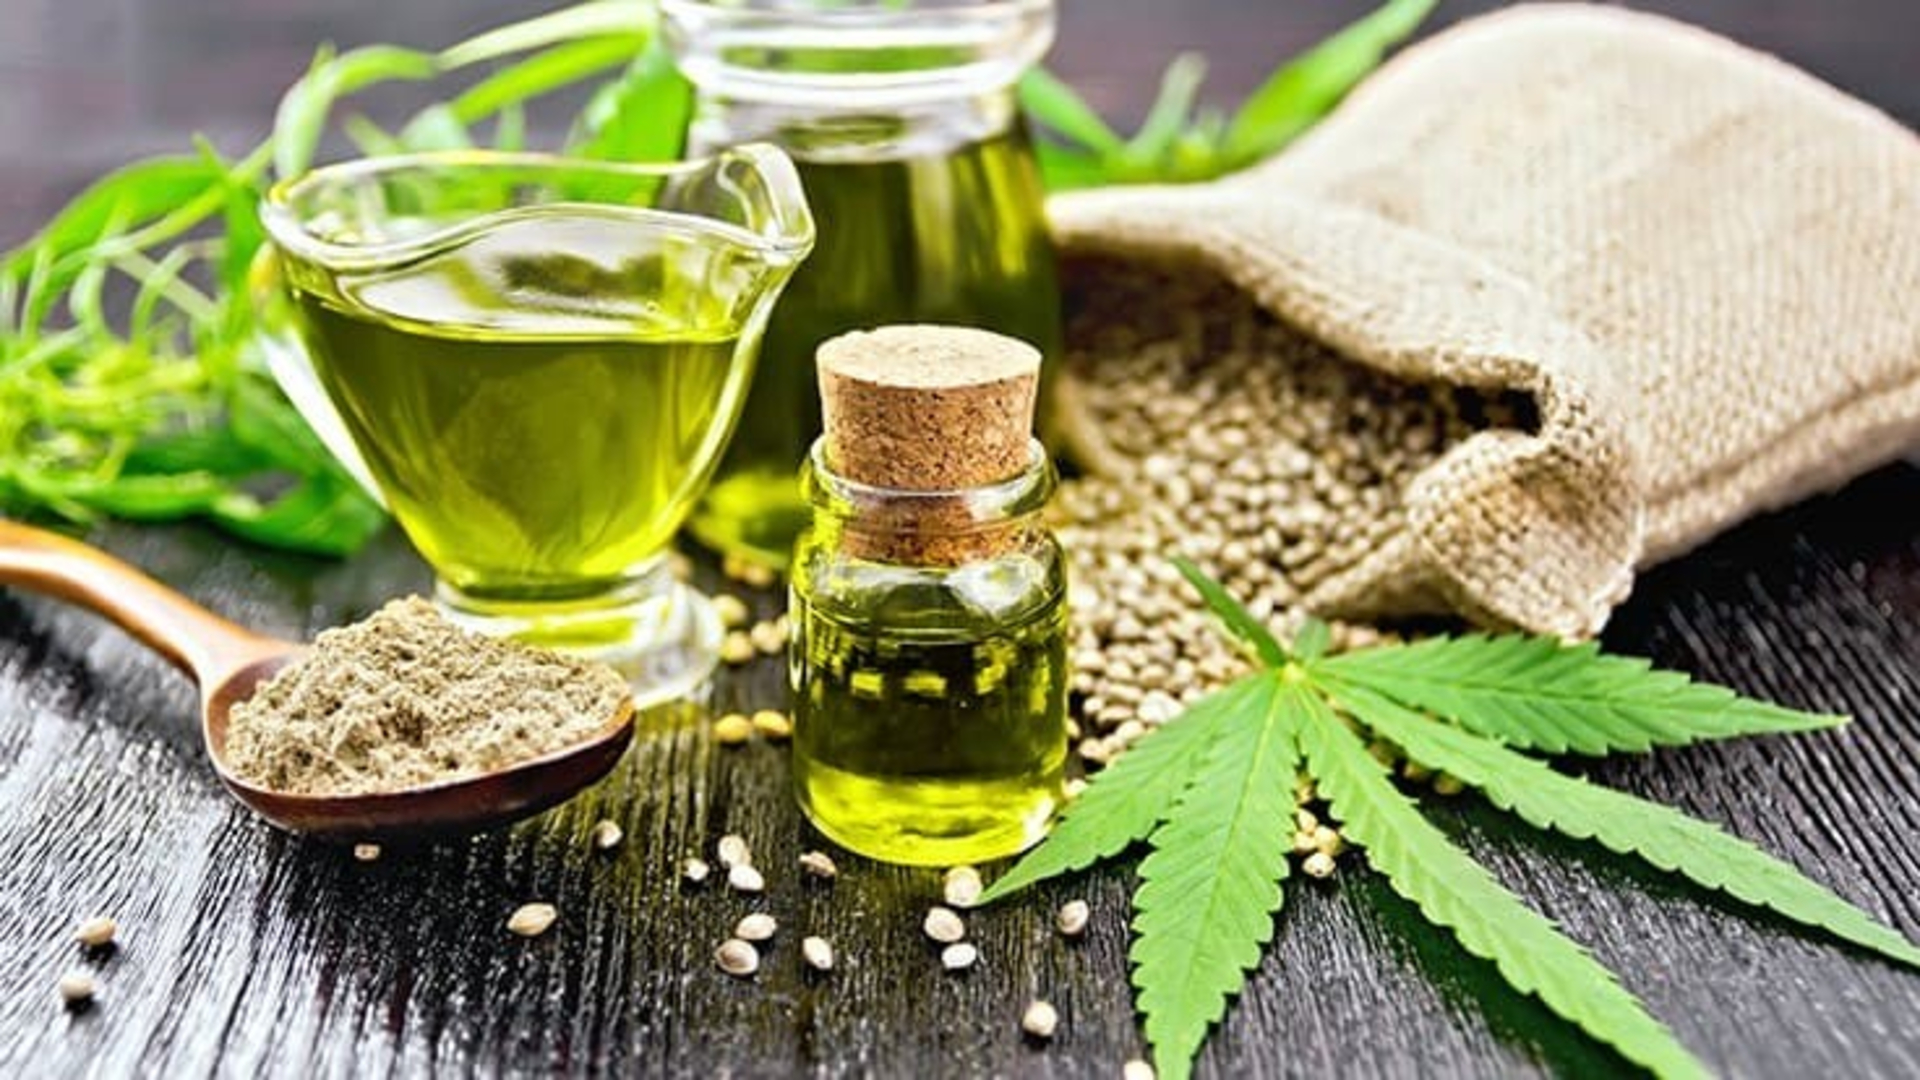 What Does FDA Say About CBD oil? image